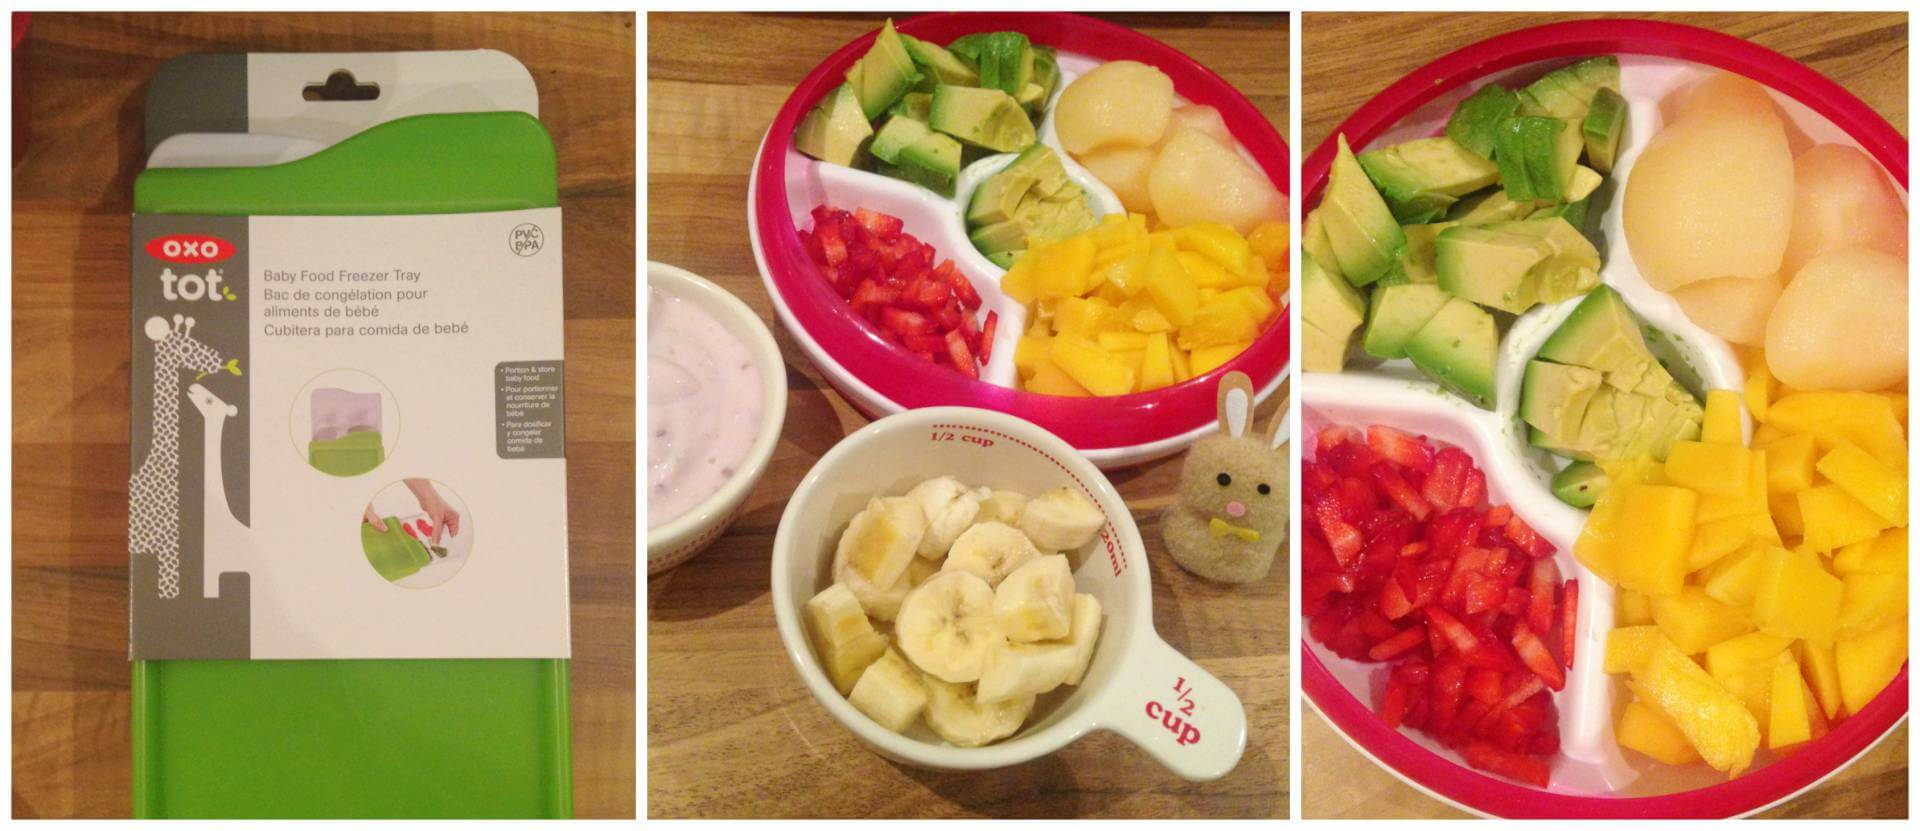 Healthy Easter Treats for Baby - Fruit pops using the OXO Tot freezer tray